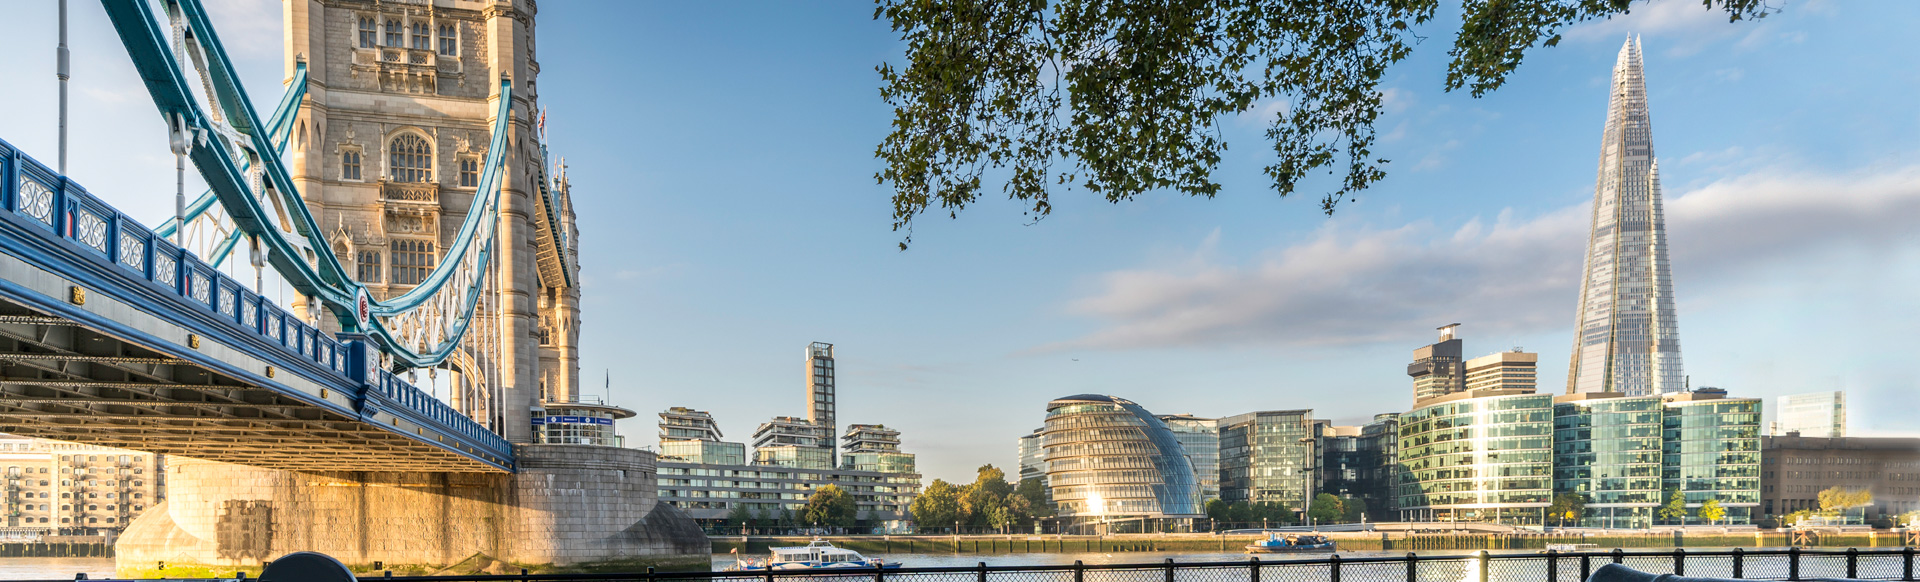 View of Tower Bridge, the Shard, the cityhall and the Thames riverside during golden hour.